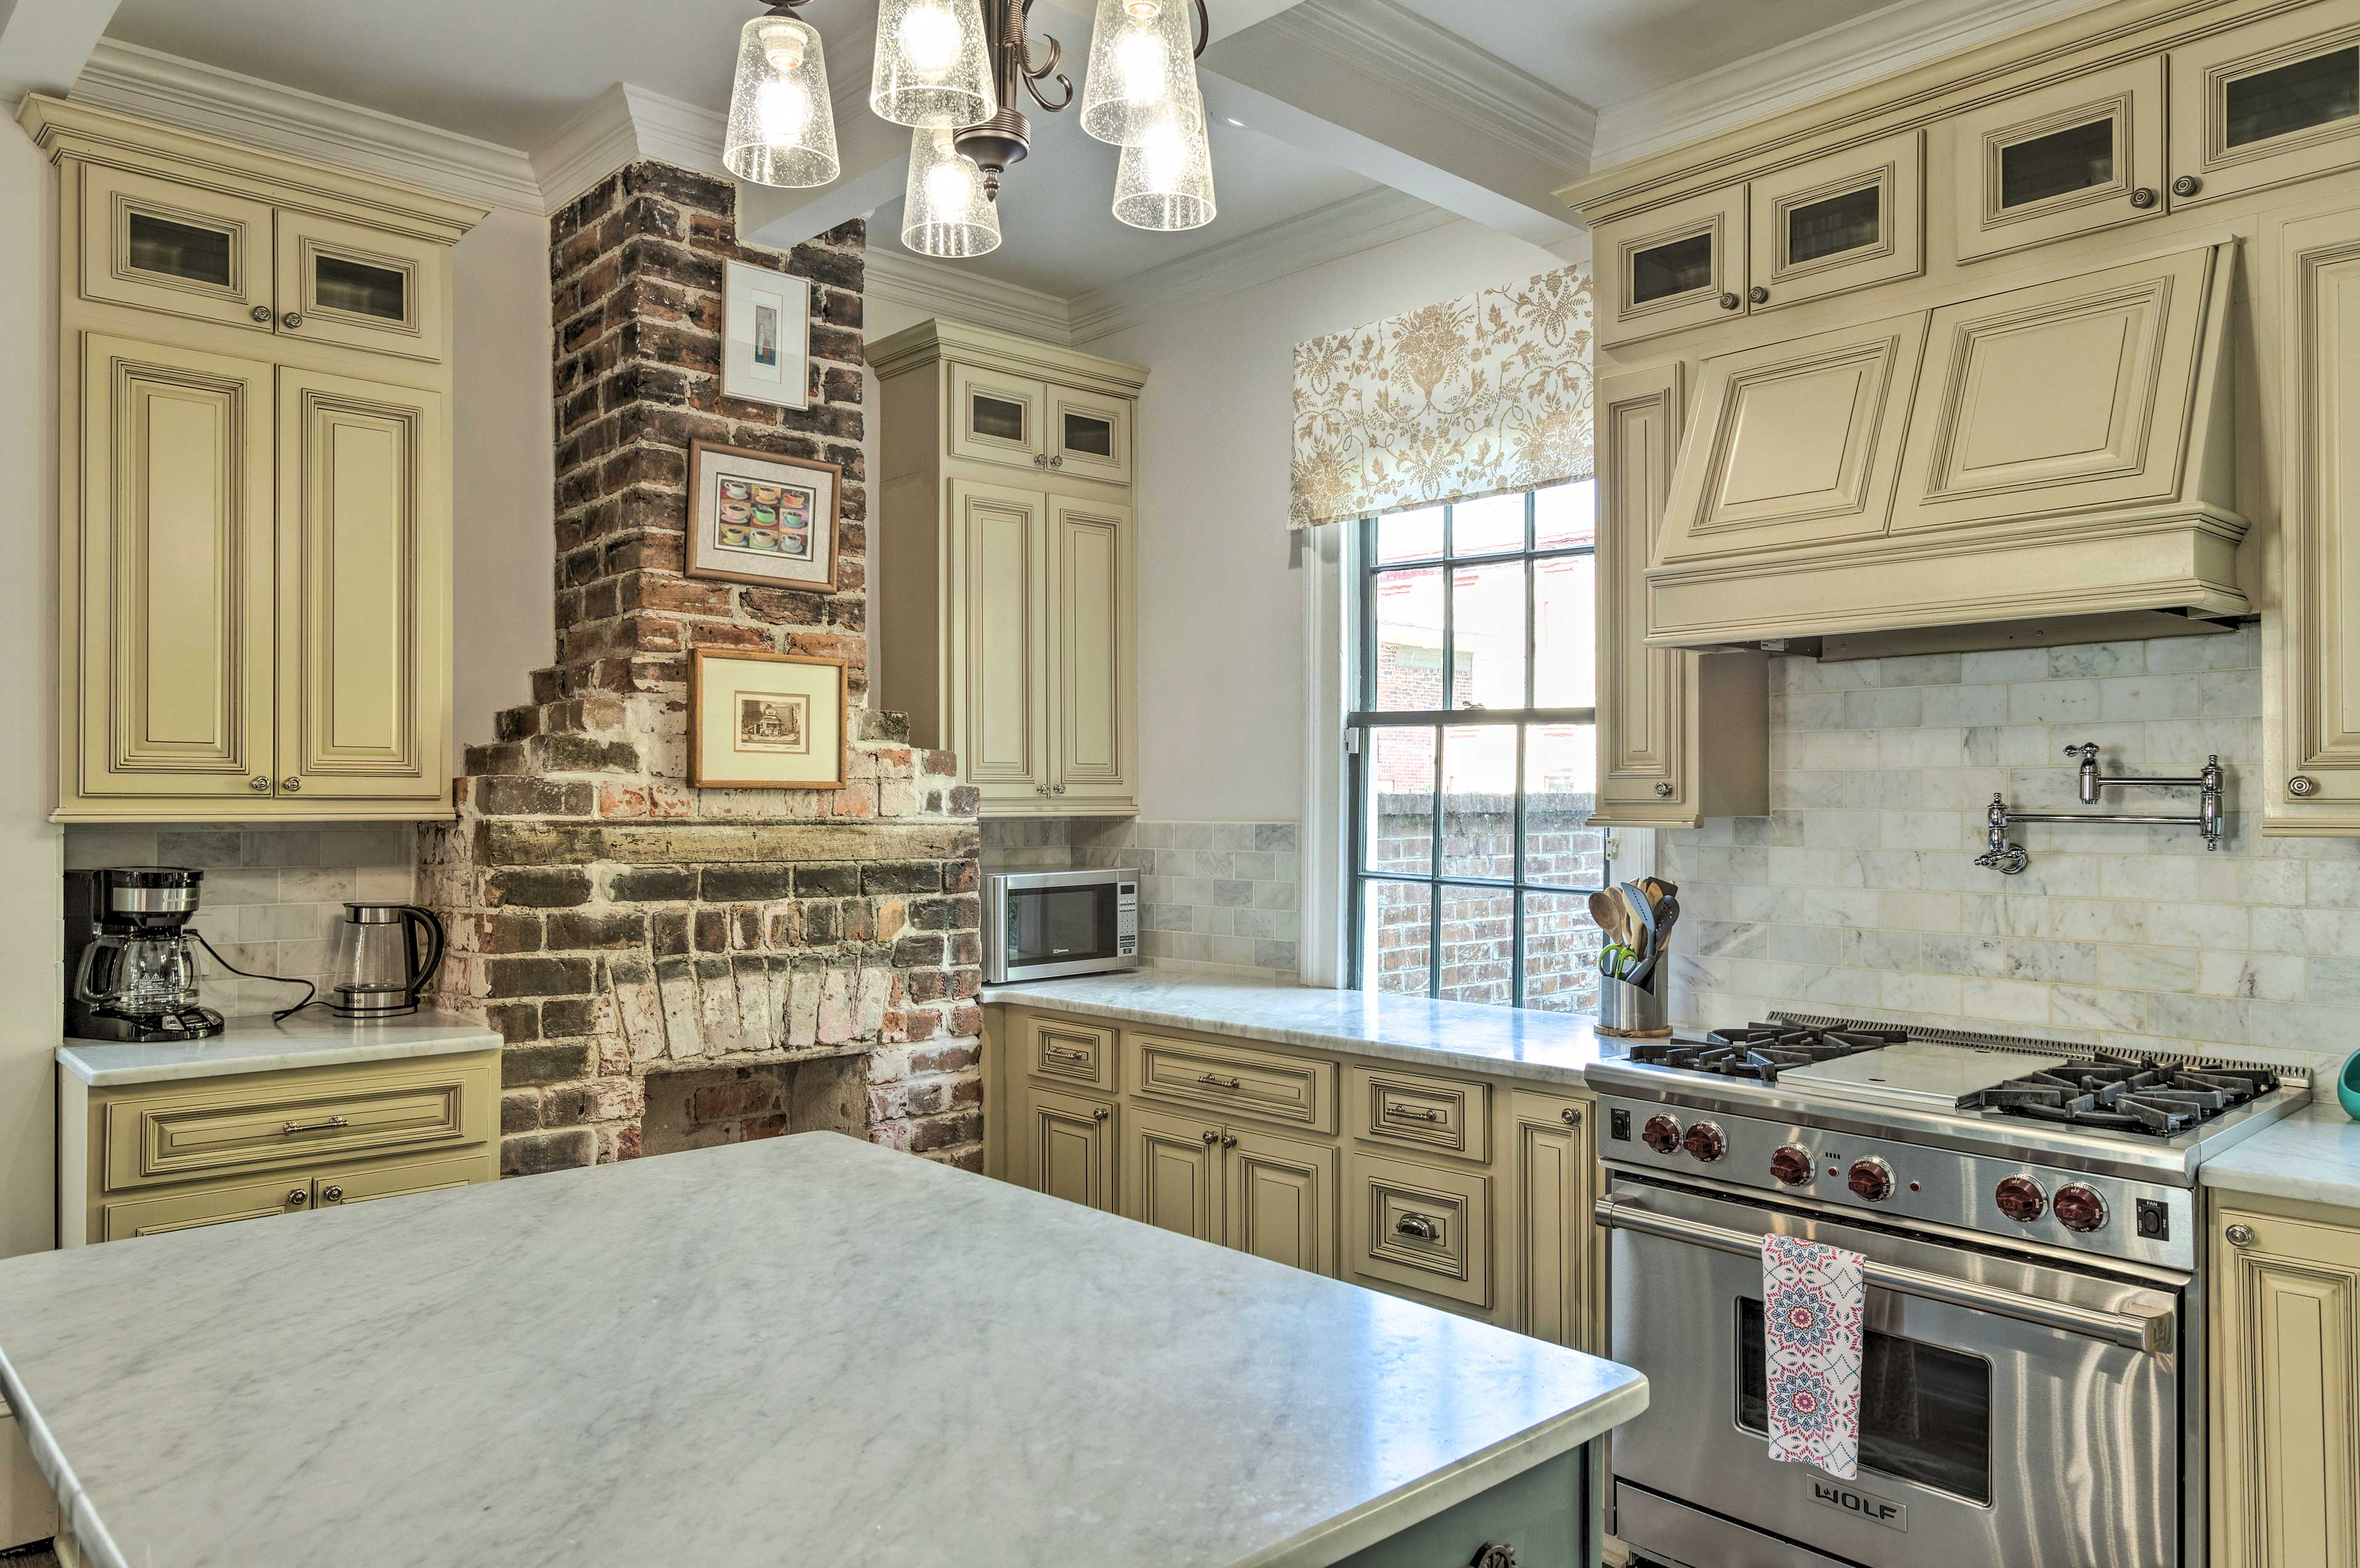 The kitchen comes fully equipped and is nice and open for entertaining.